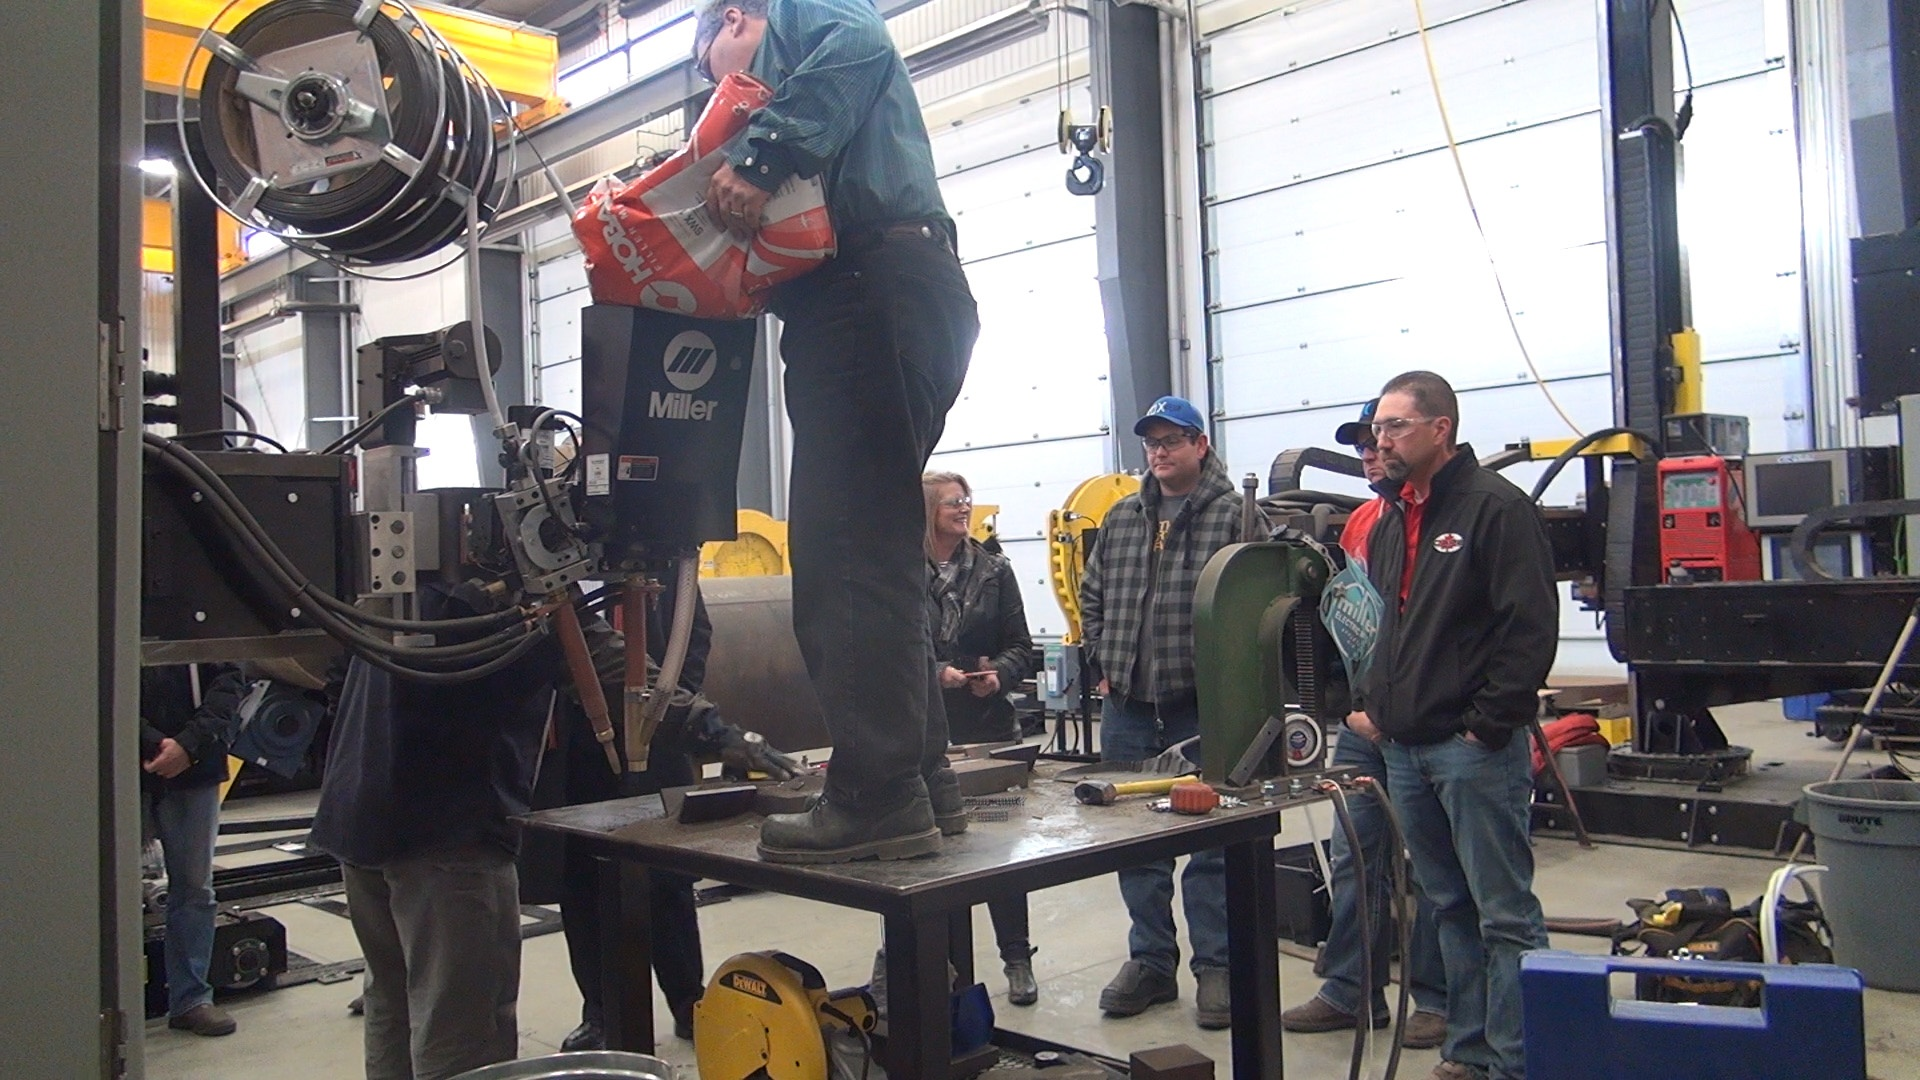 flux being refilled into hopper of the welding manipulator